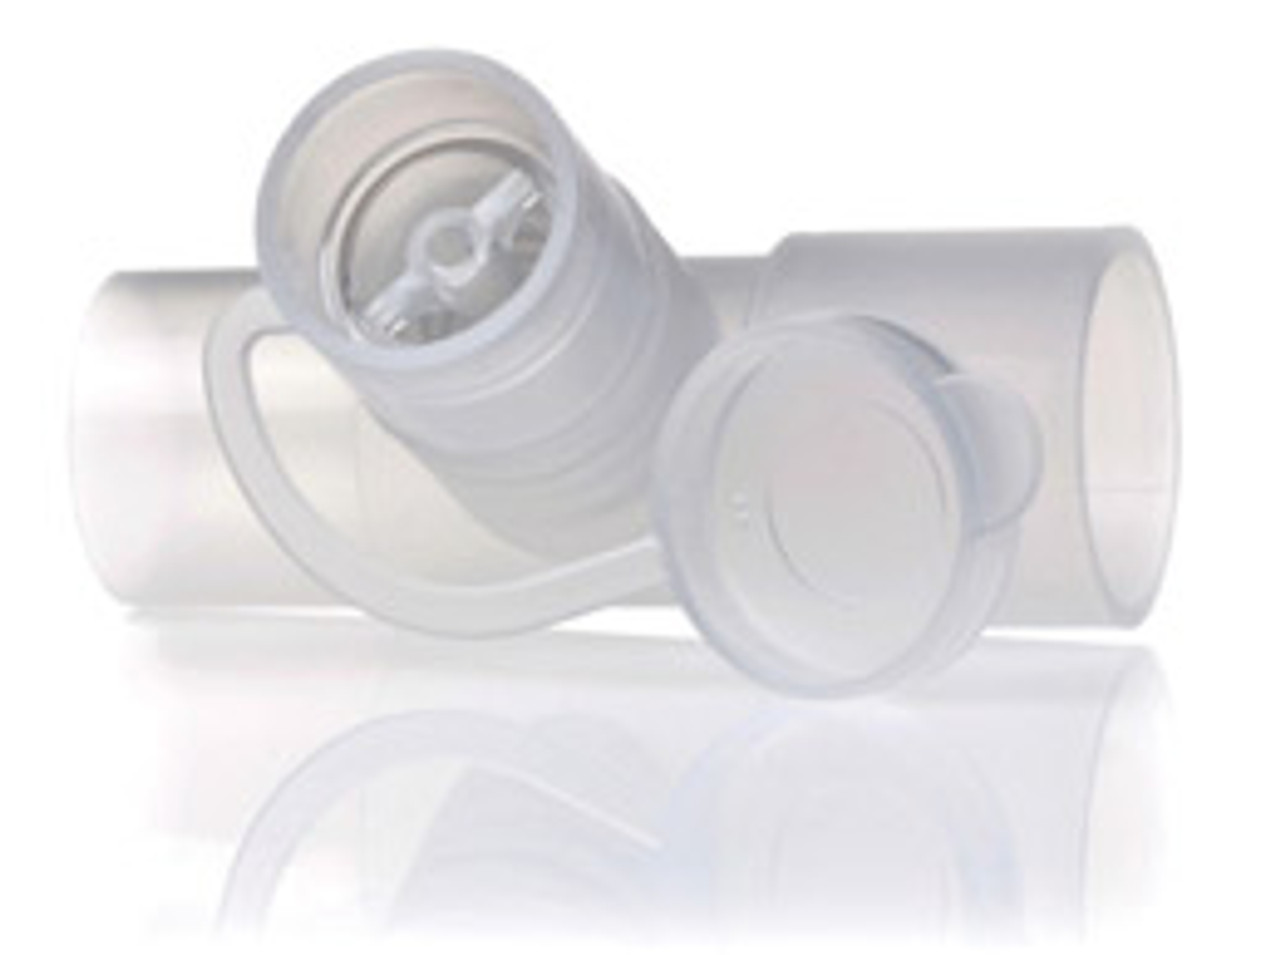 Nebulizer 'T' Adapter with Valve for CPAP